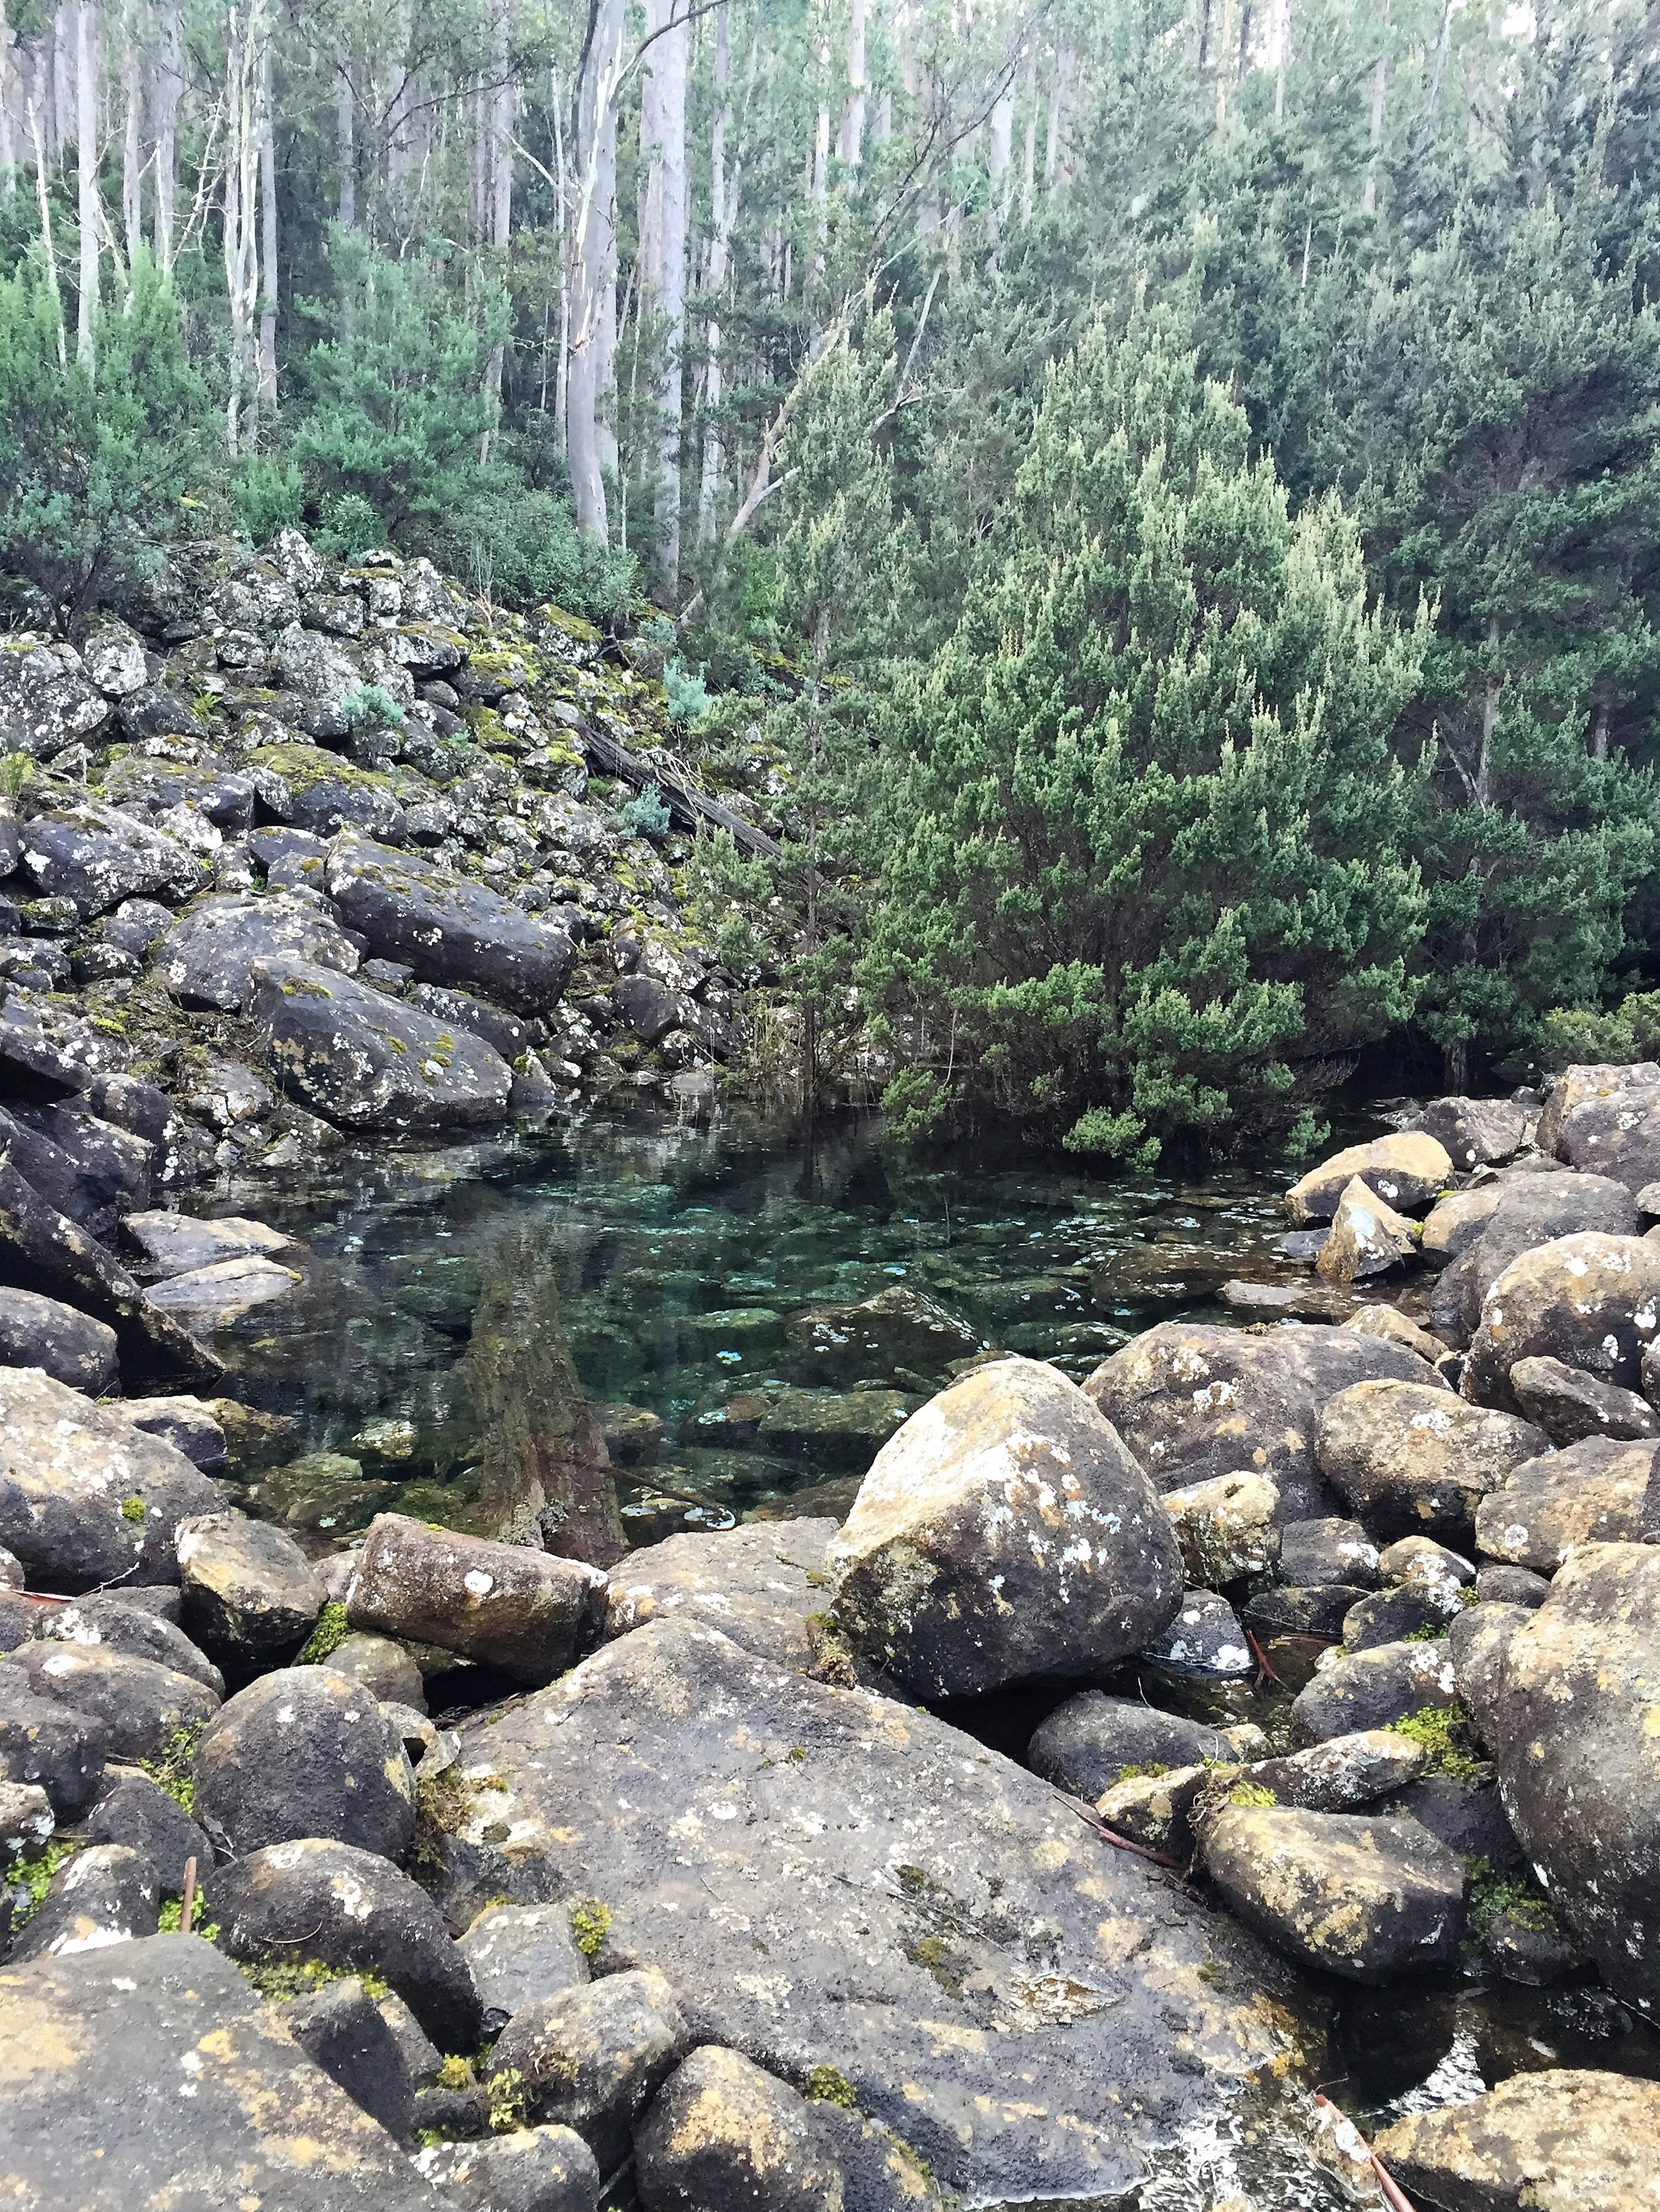 The Disappearing Tarn